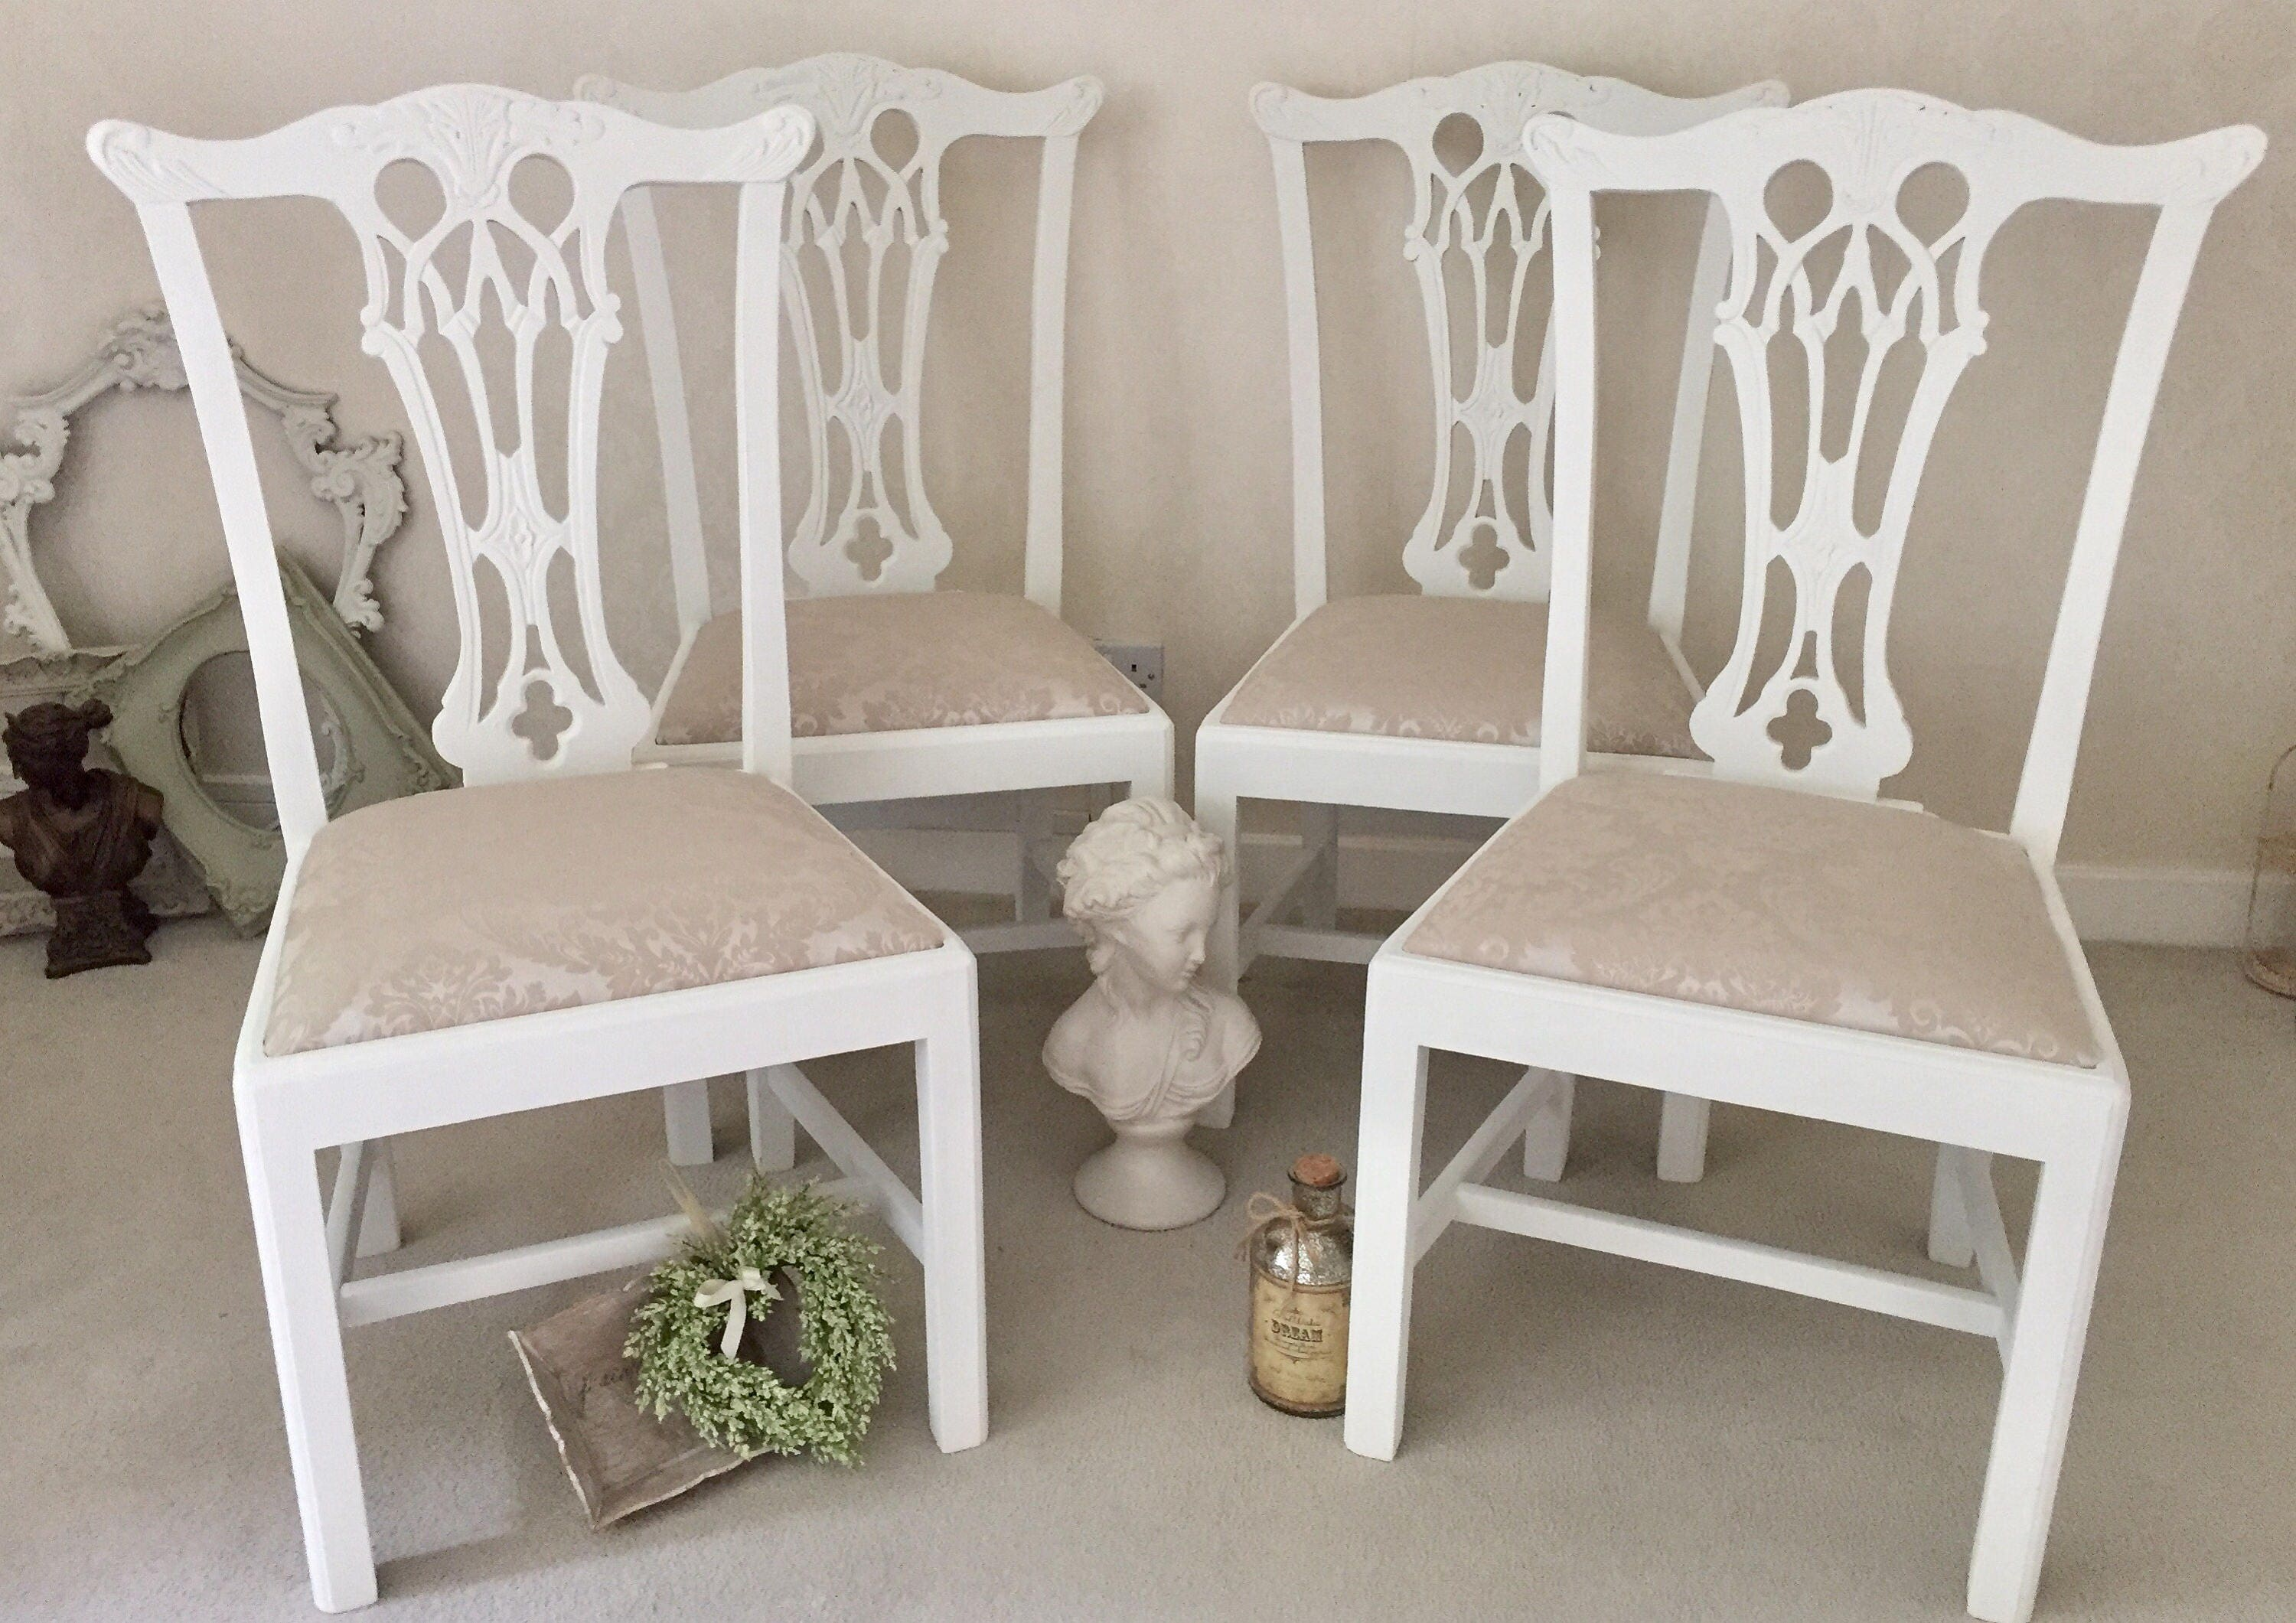 Shabby Chic Dining Chairs Kitchen Dining Room Chairs Antique Wooden Chairs French Vintage Set Of 4 Chairs.